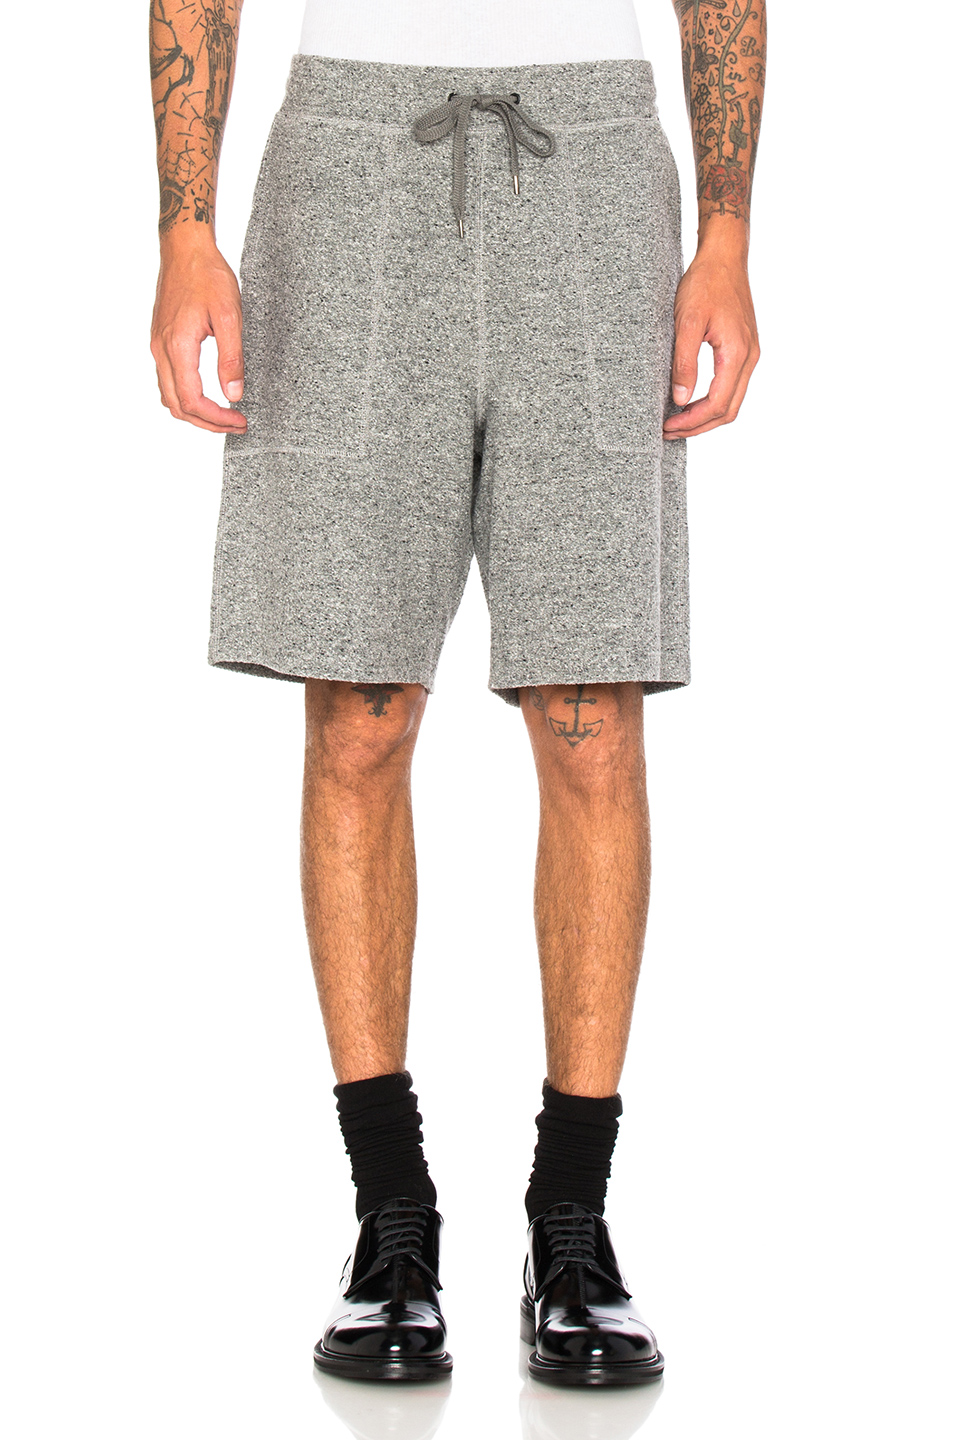 Robert Geller Richard Shorts in Gray